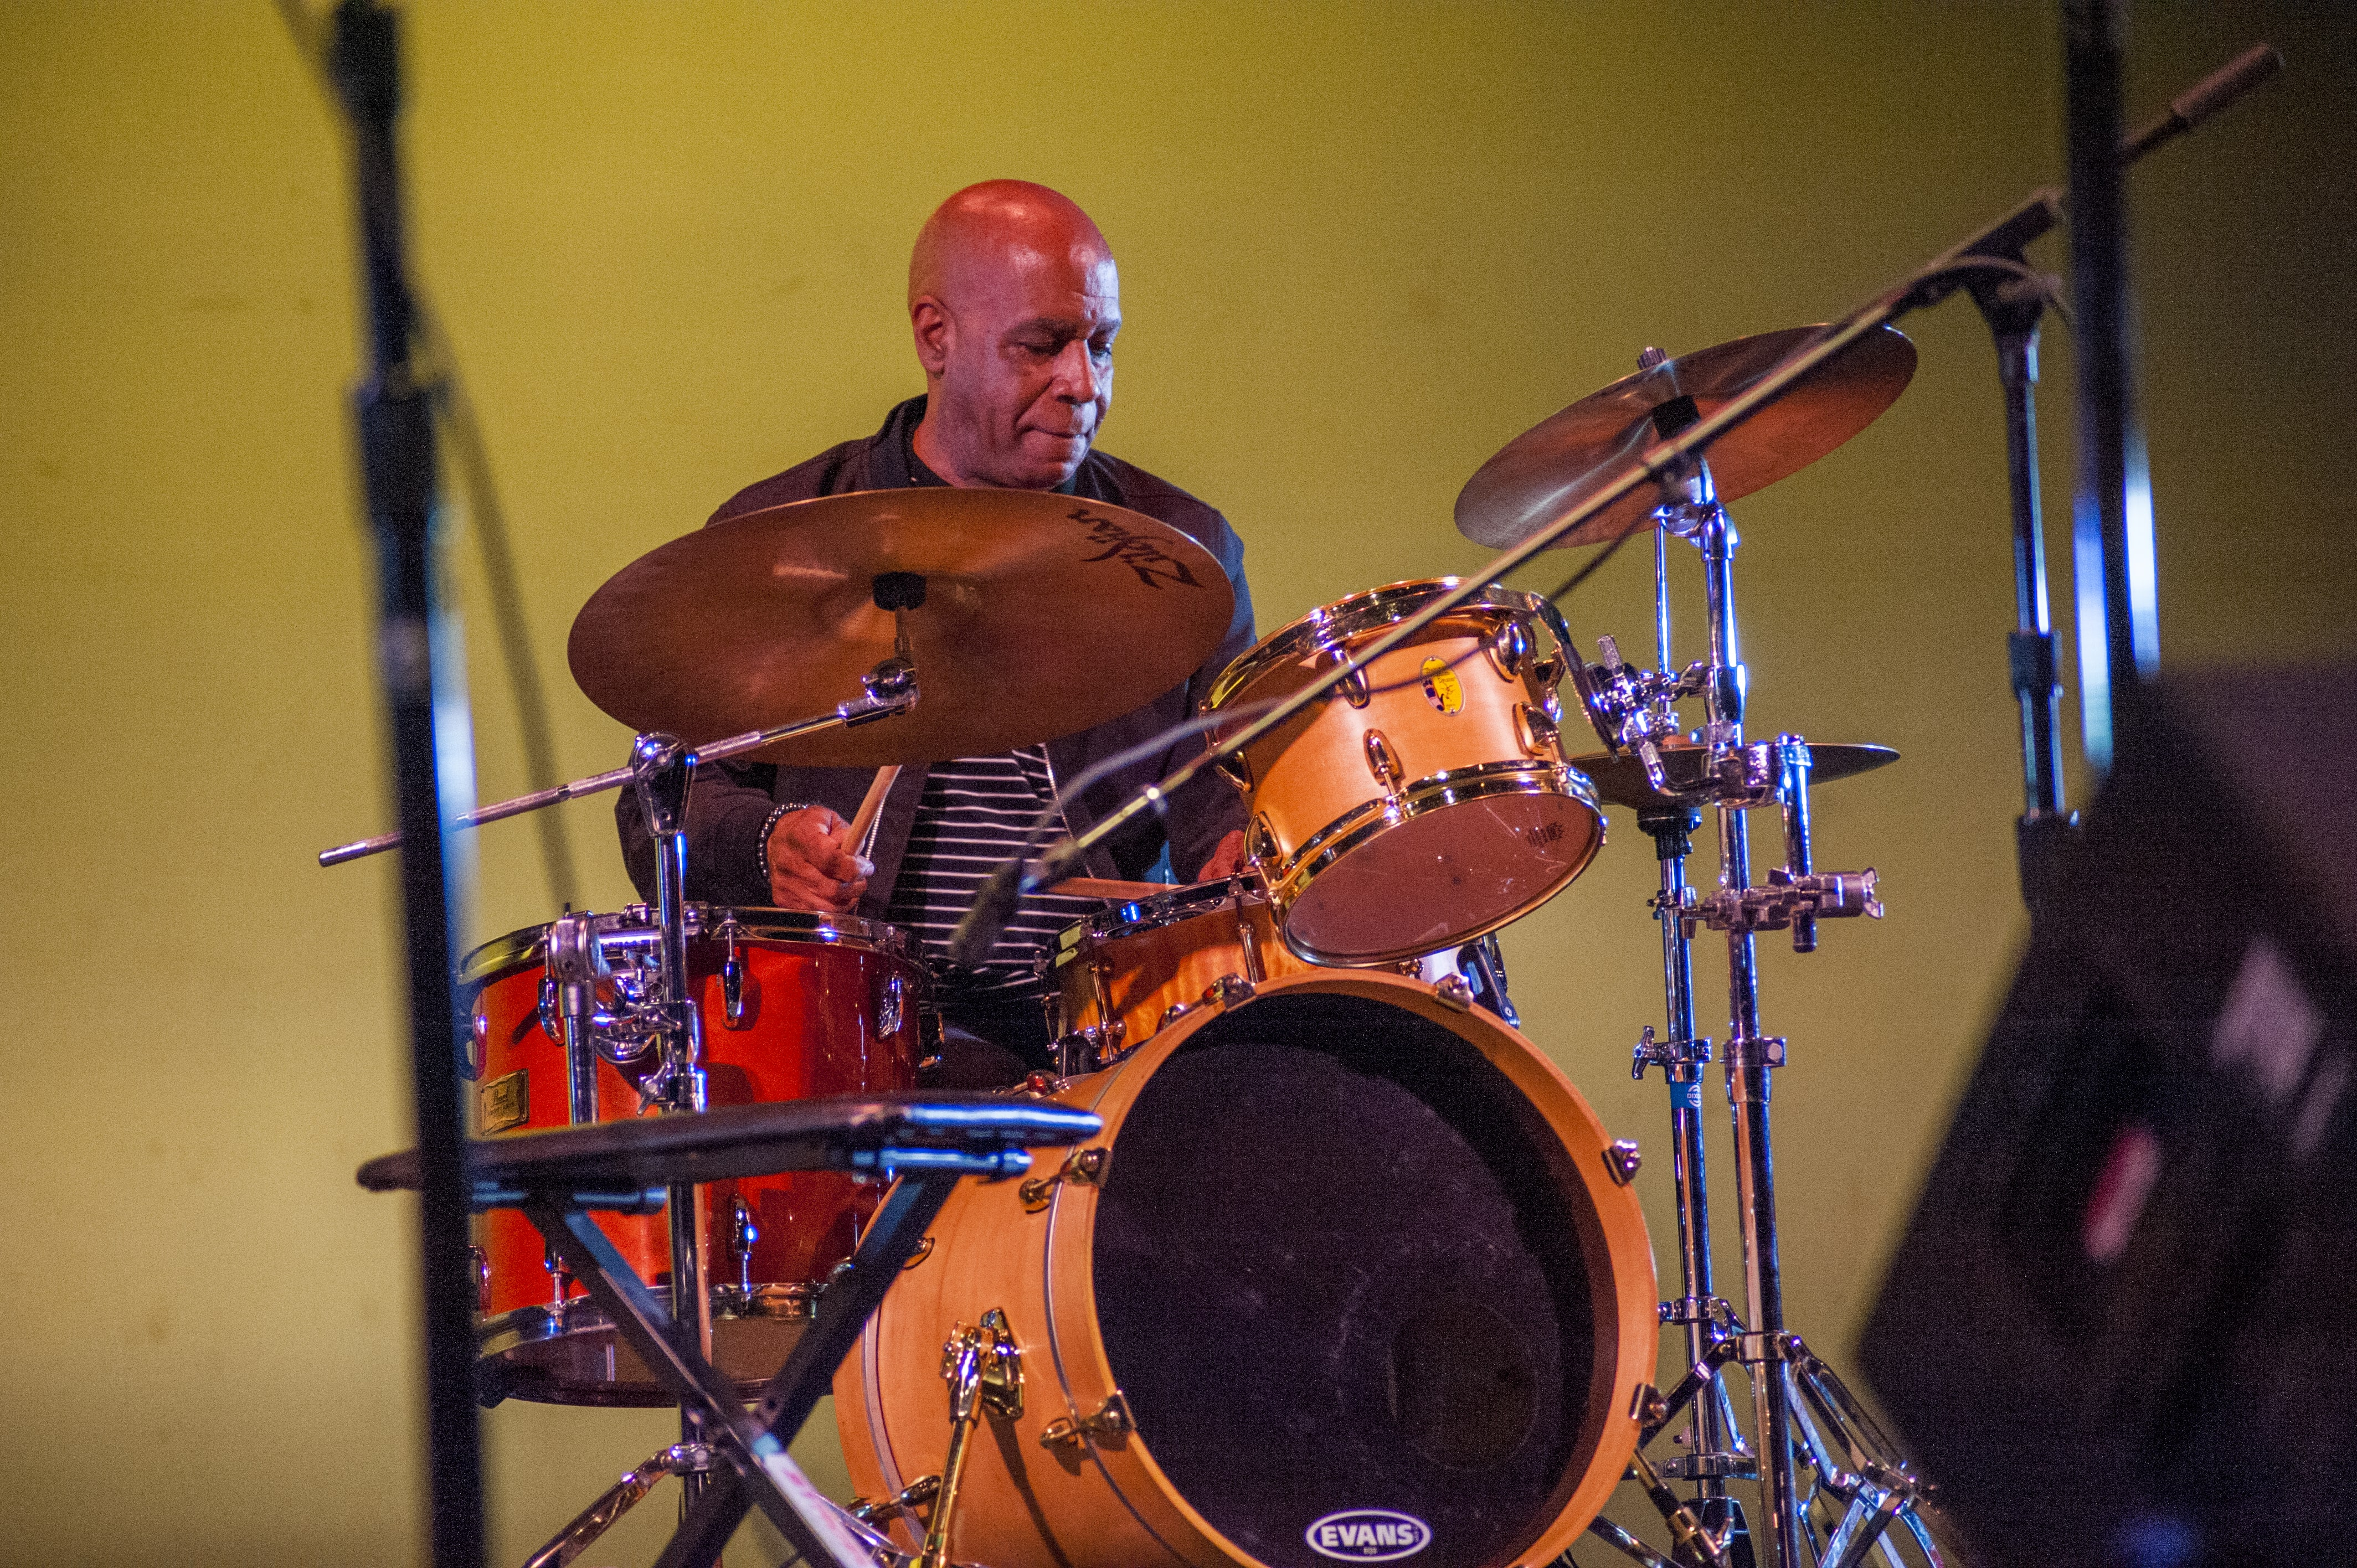 drum lessons for kids and adults near me in castro valley ca